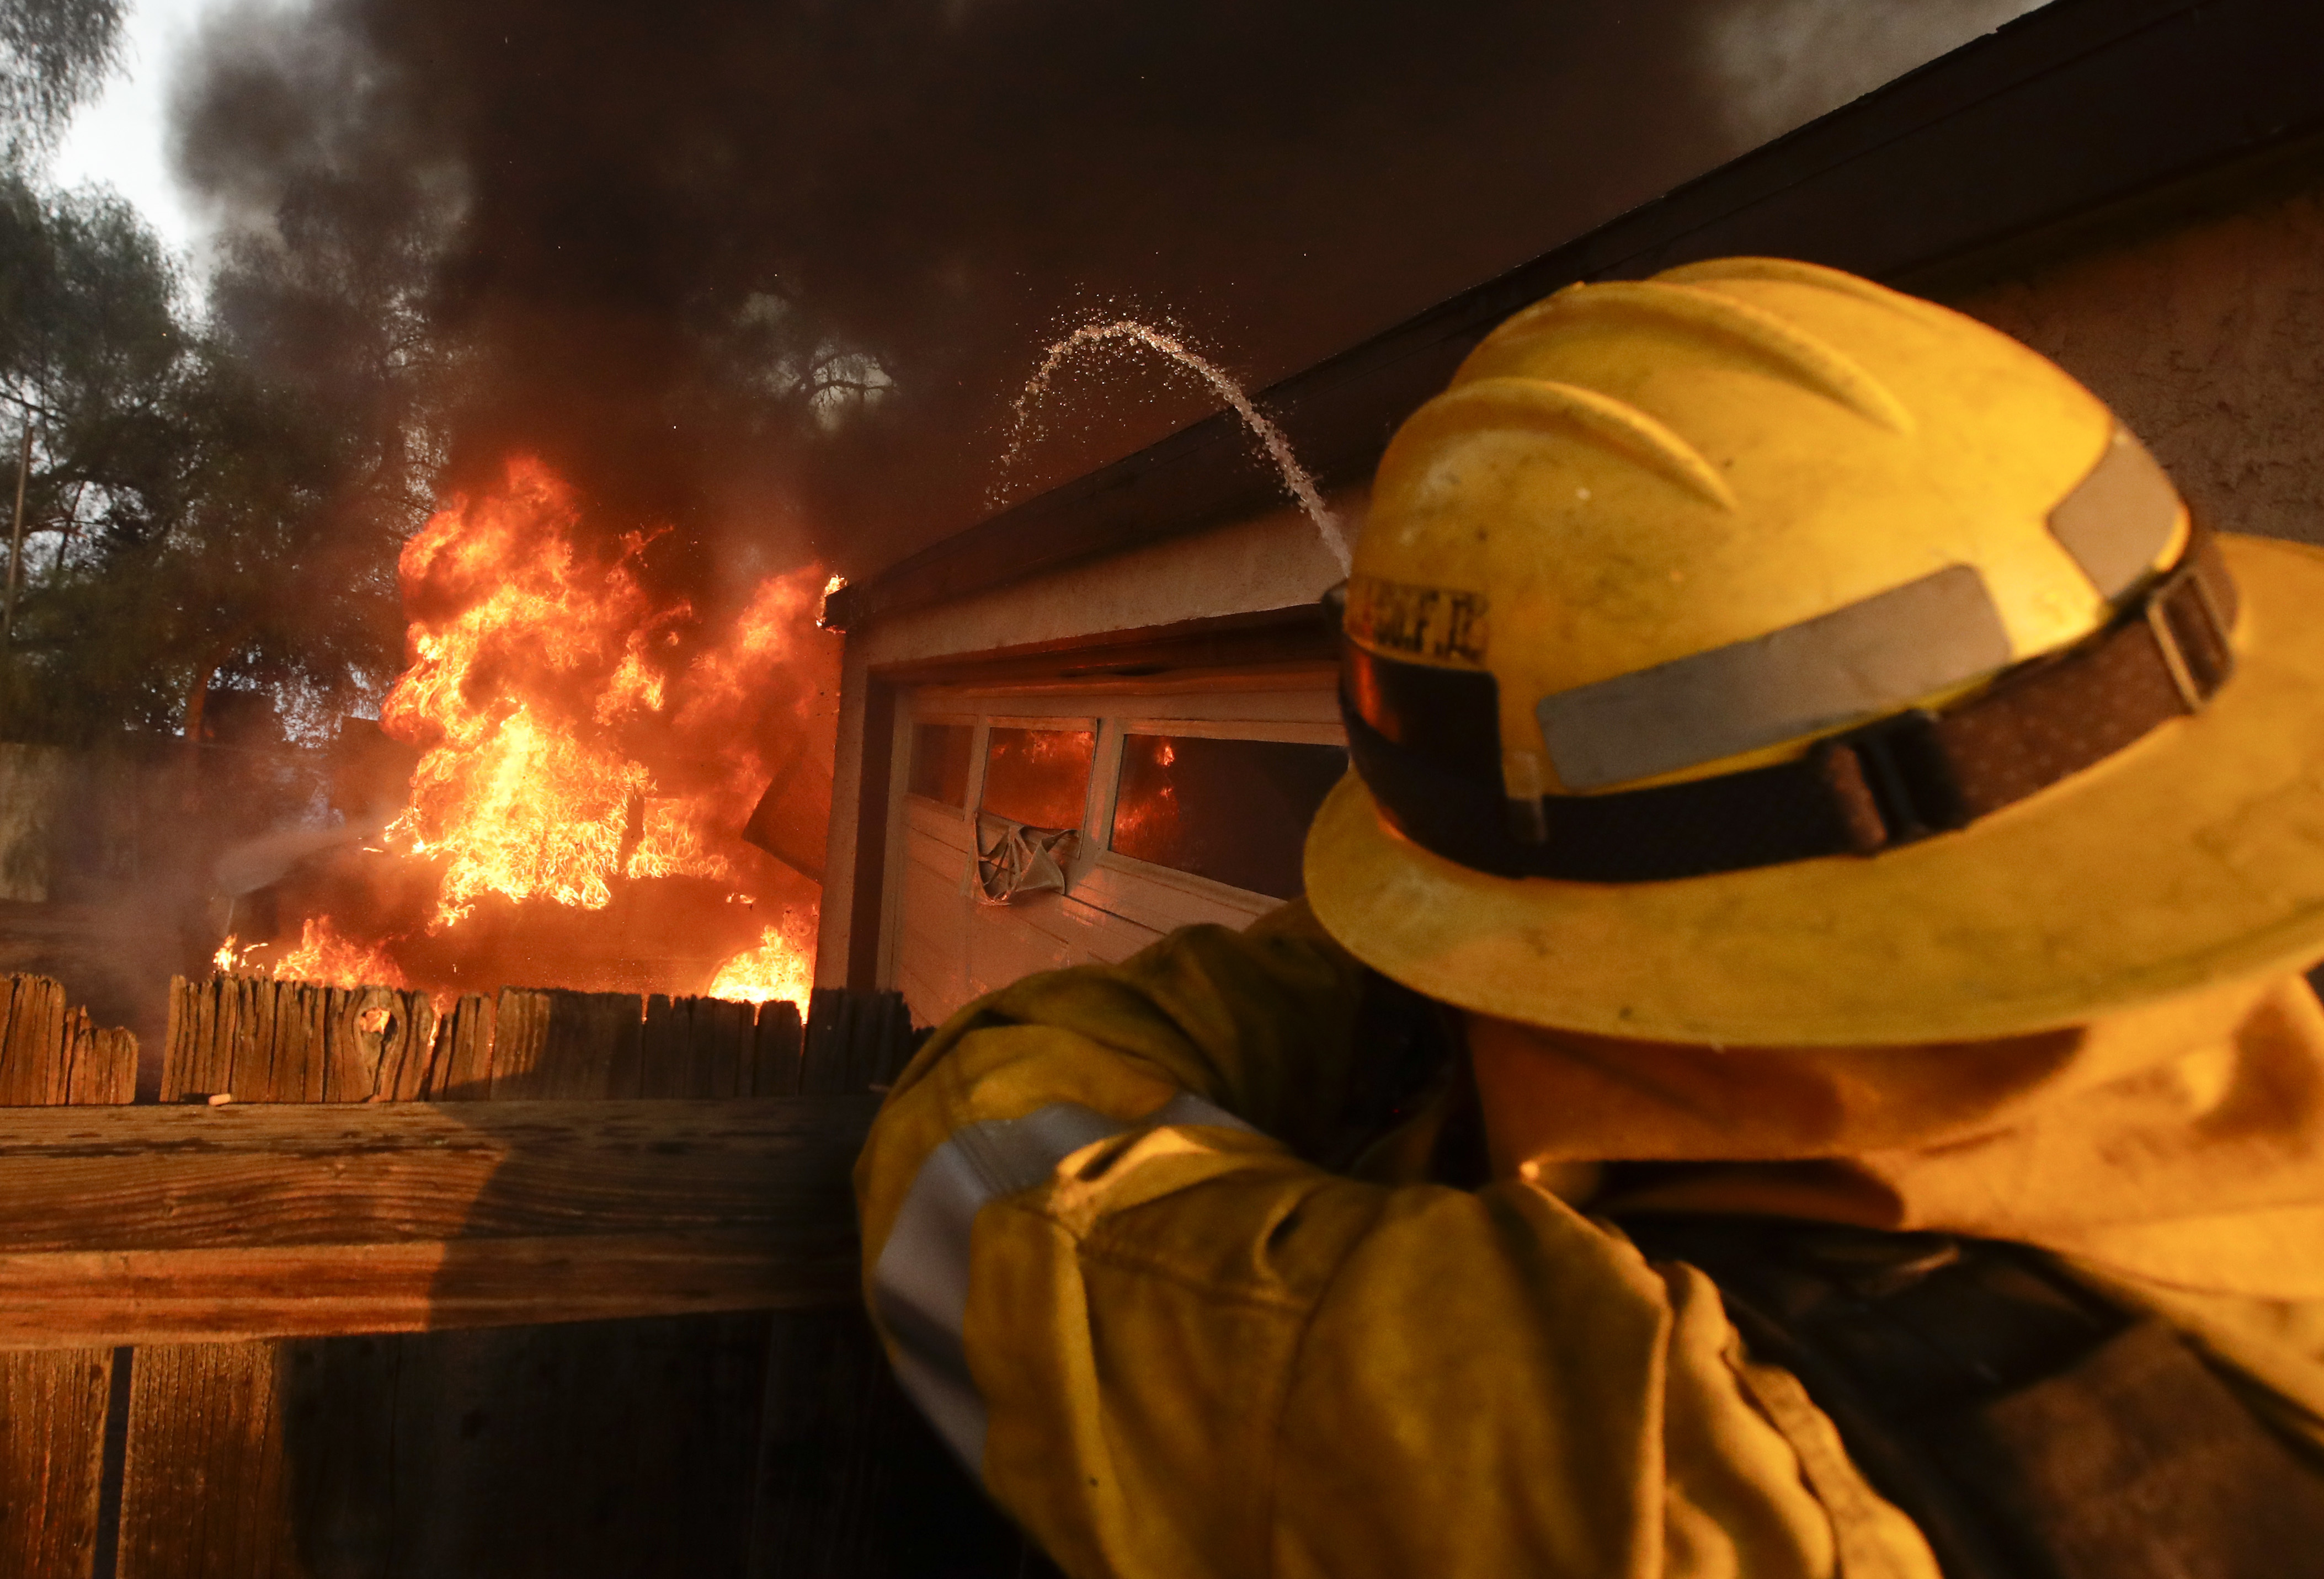 <div class='meta'><div class='origin-logo' data-origin='none'></div><span class='caption-text' data-credit='Chris Carlson/AP Photo'>A Los Angeles County firefighter puts water a burning house in a wildfire in the Lake View Terrace area of Los Angeles Tuesday, Dec. 5, 2017.</span></div>